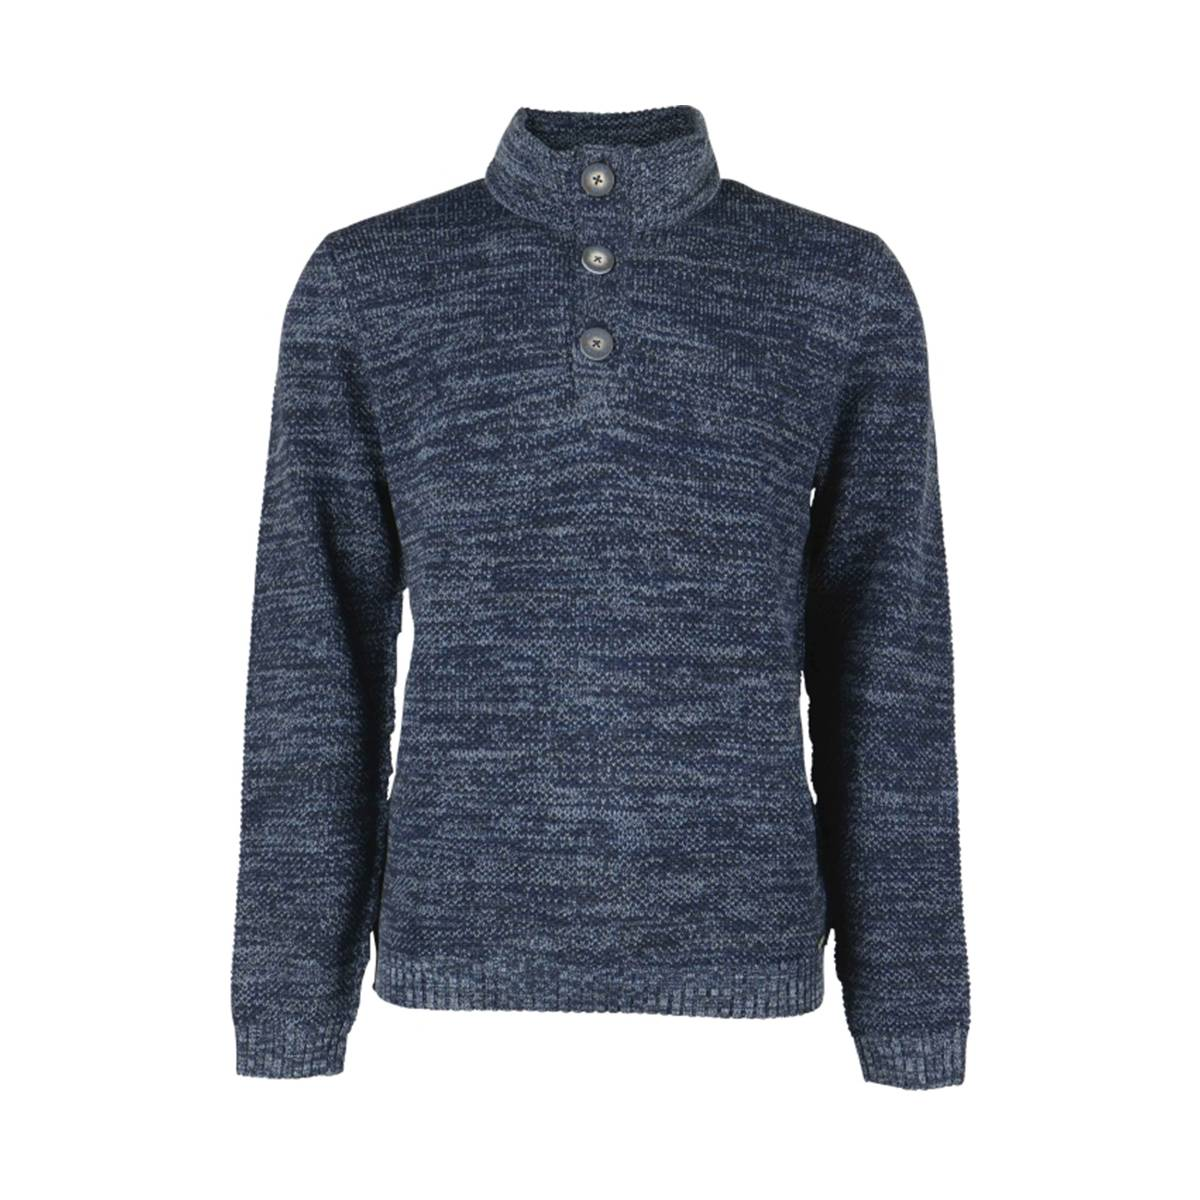 No-Excess 82230910 PULLOVER Blauw